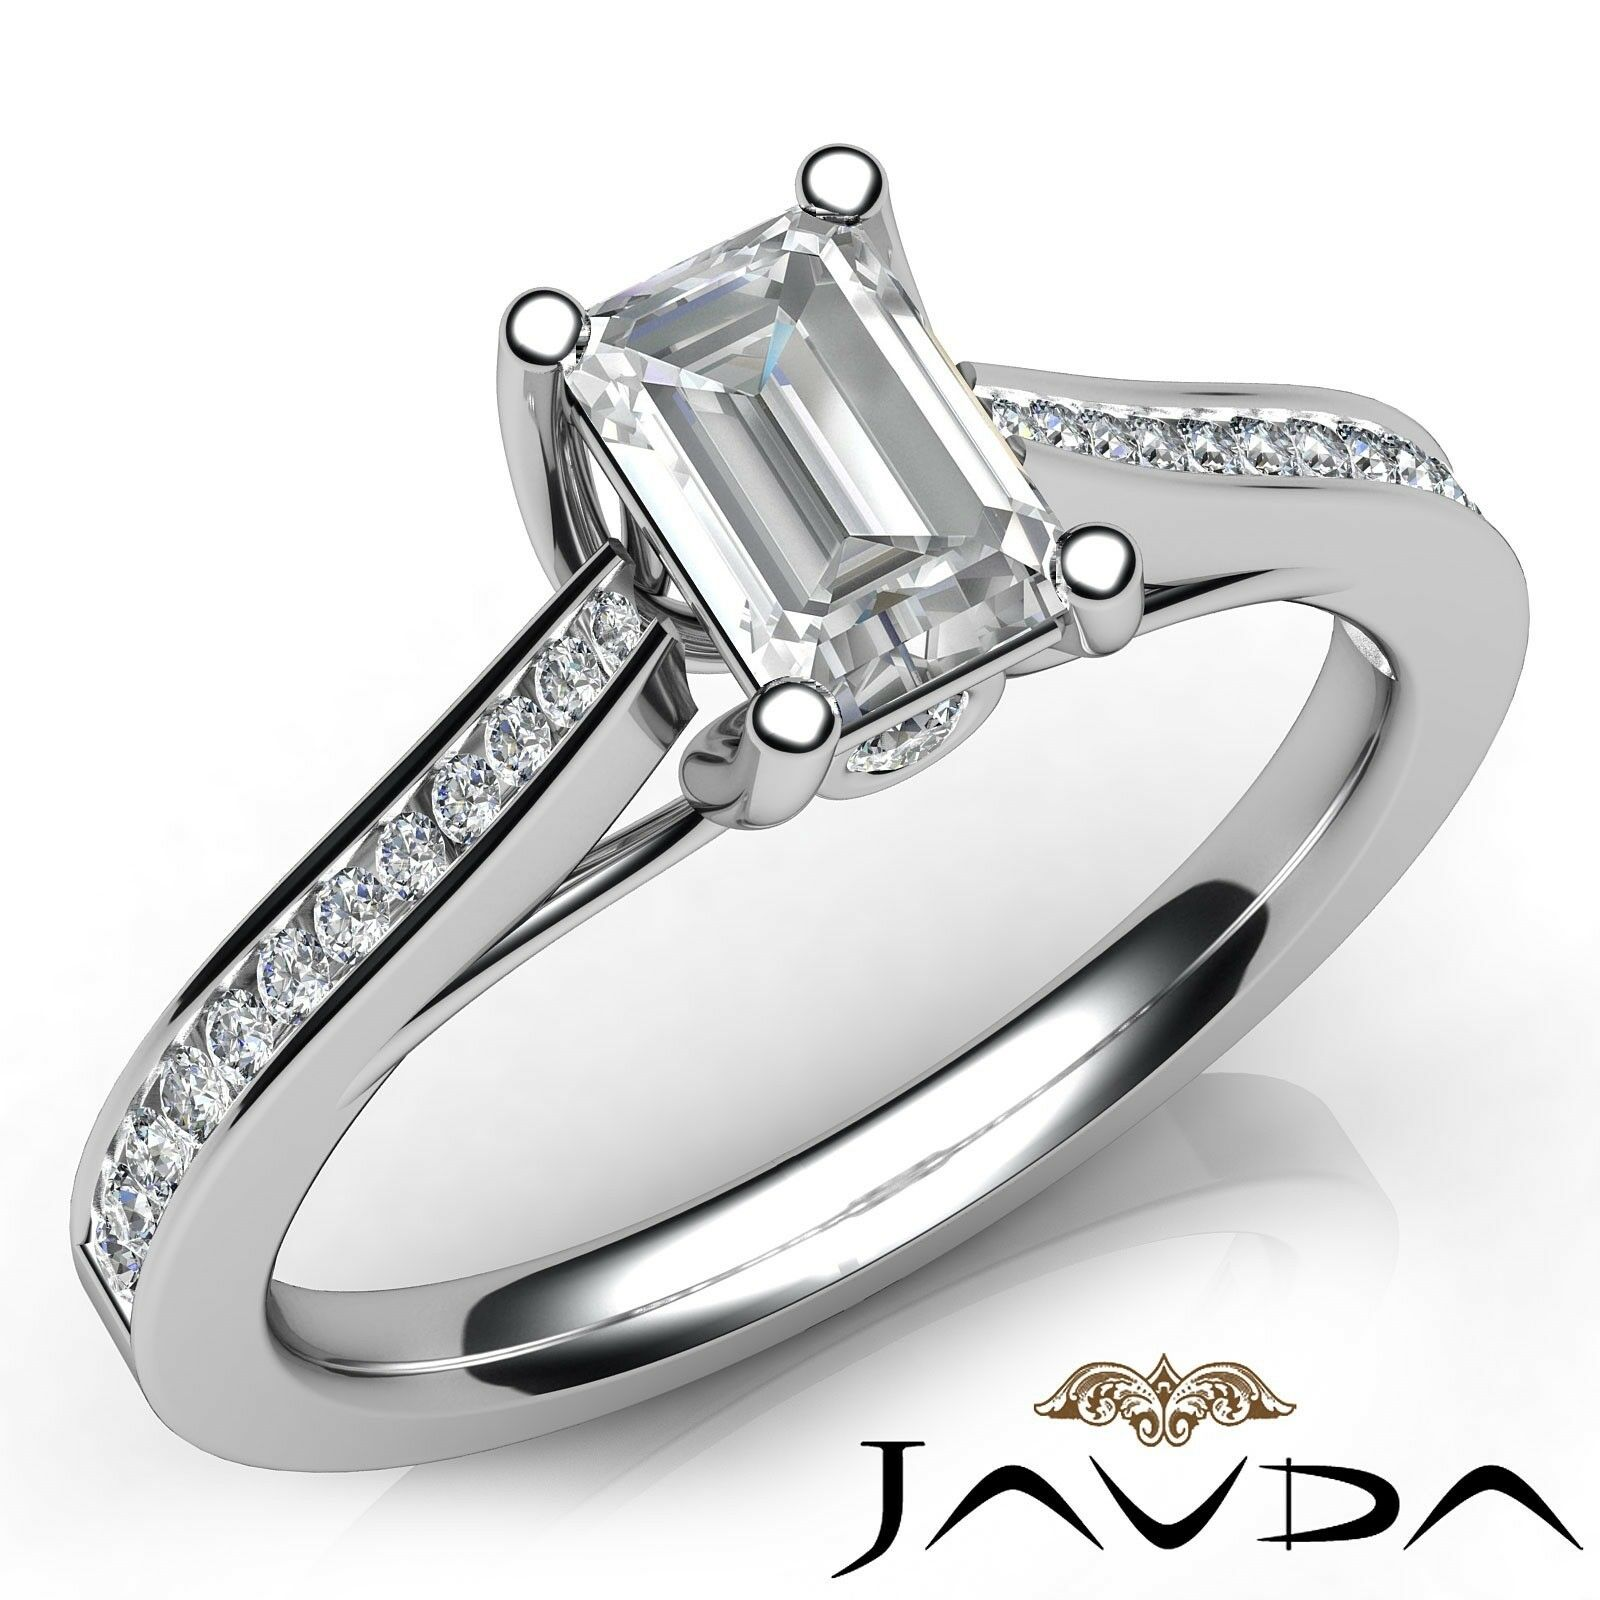 1.2ctw Channel Set Stone Emerald Diamond Engagement Ring GIA J-SI1 White Gold